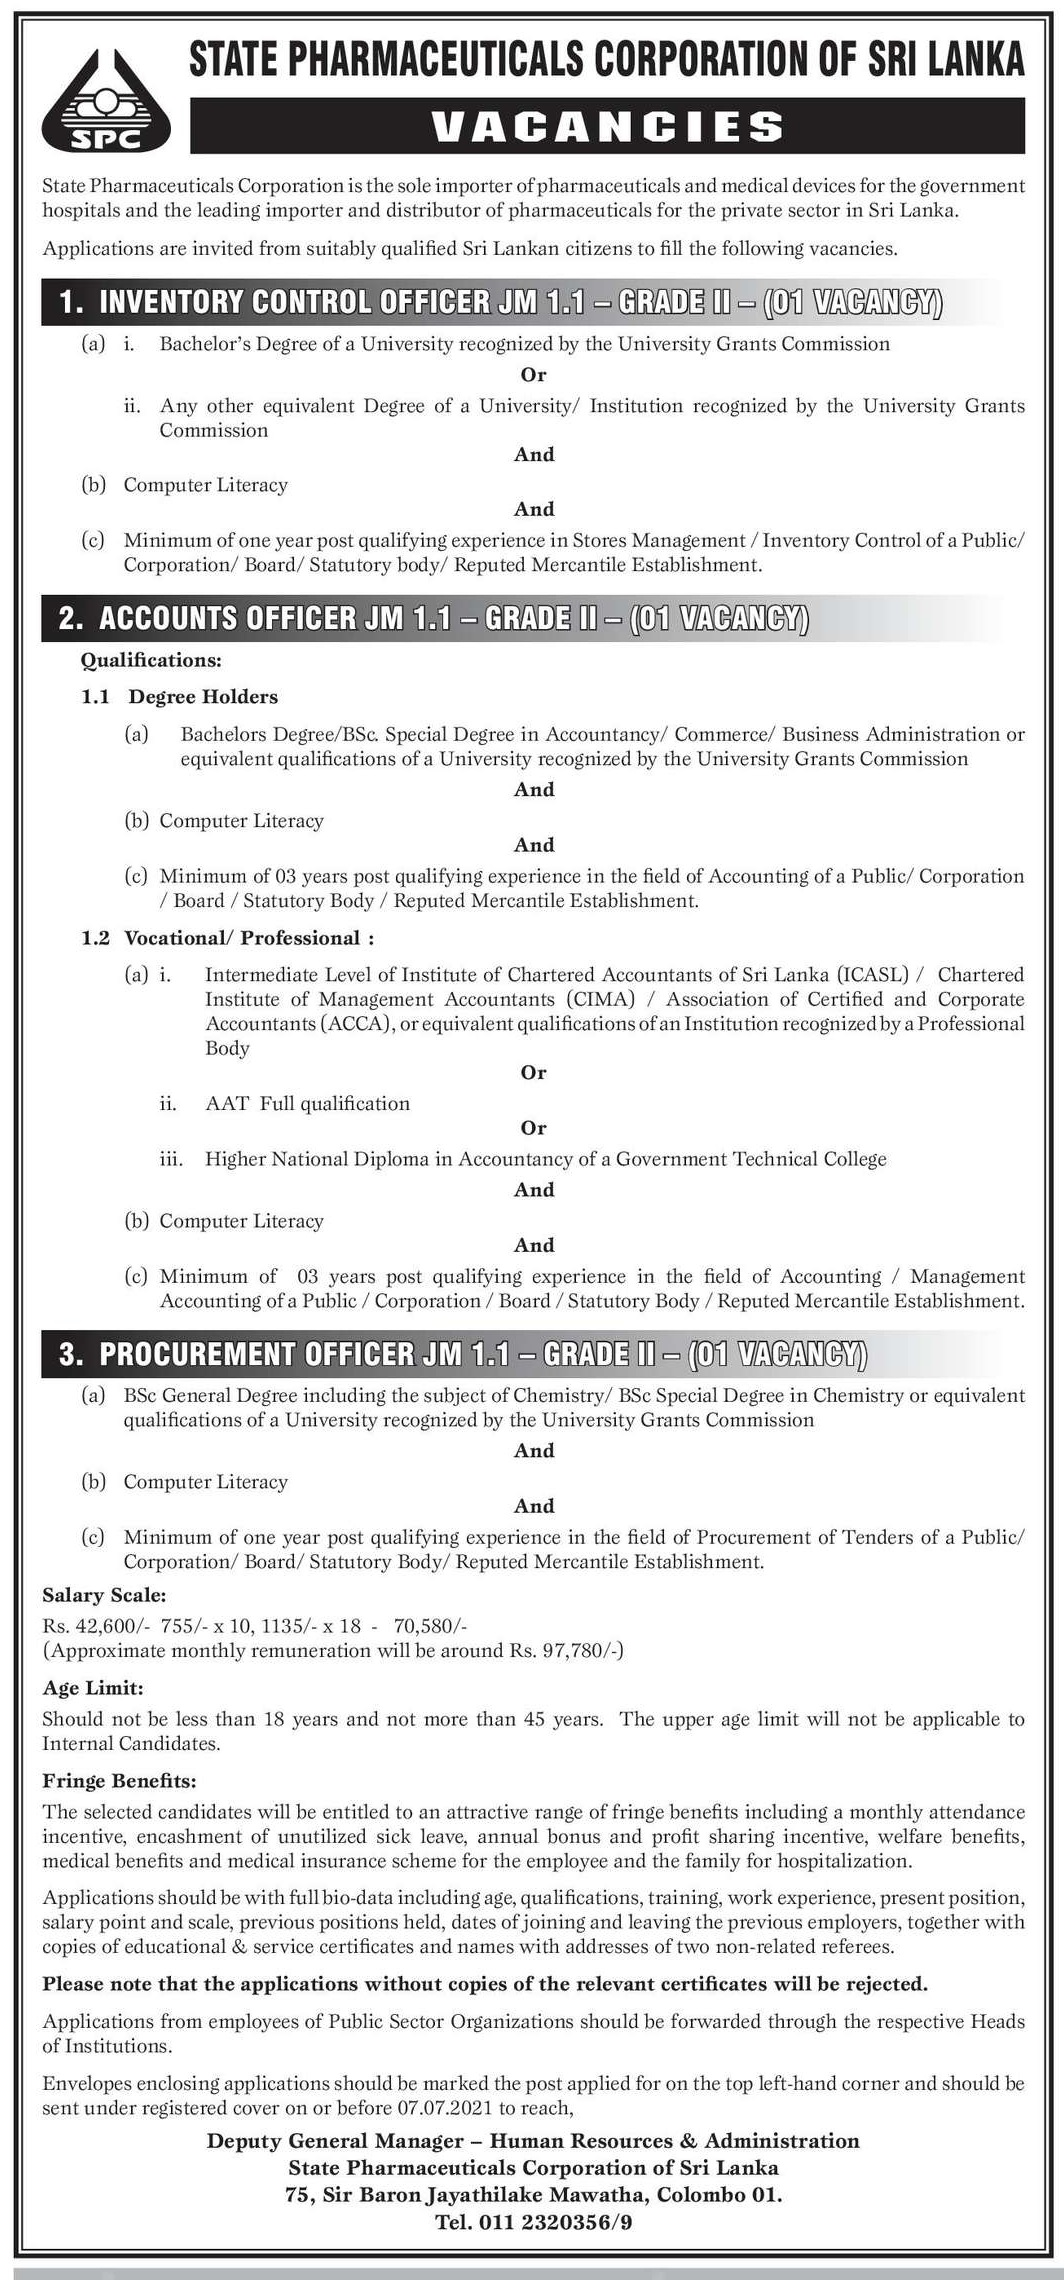 Inventory Control Officer, Accounts Officer, Procurement officer